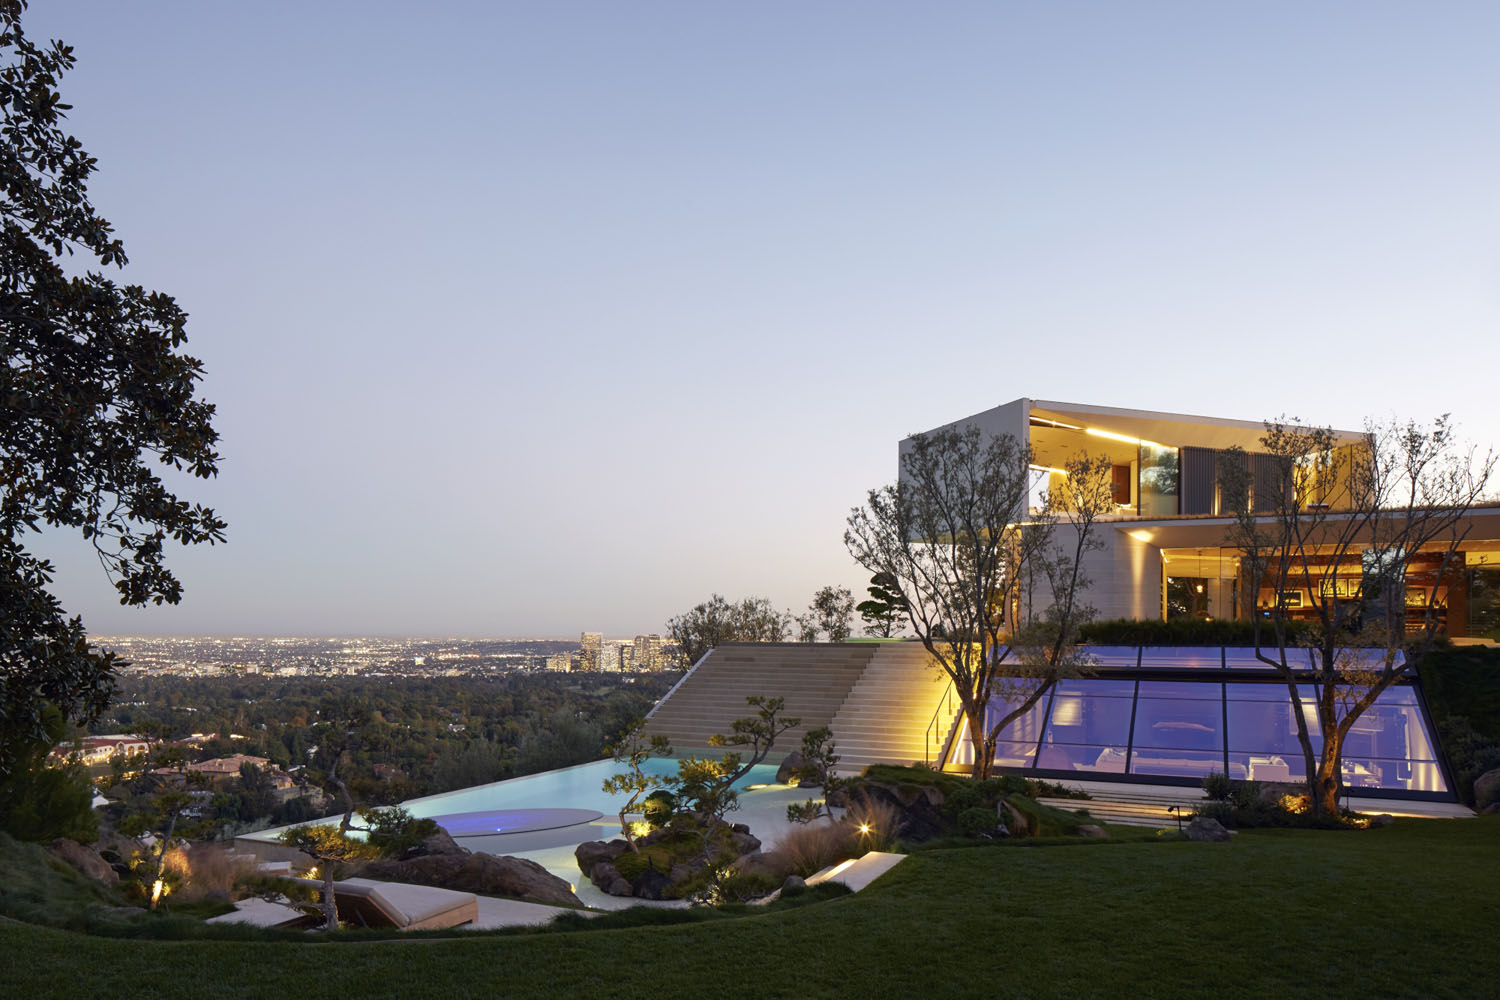 Los Angeles Hillside Villa Retreat With Daring Modern Architecture  iDesignArch  Interior